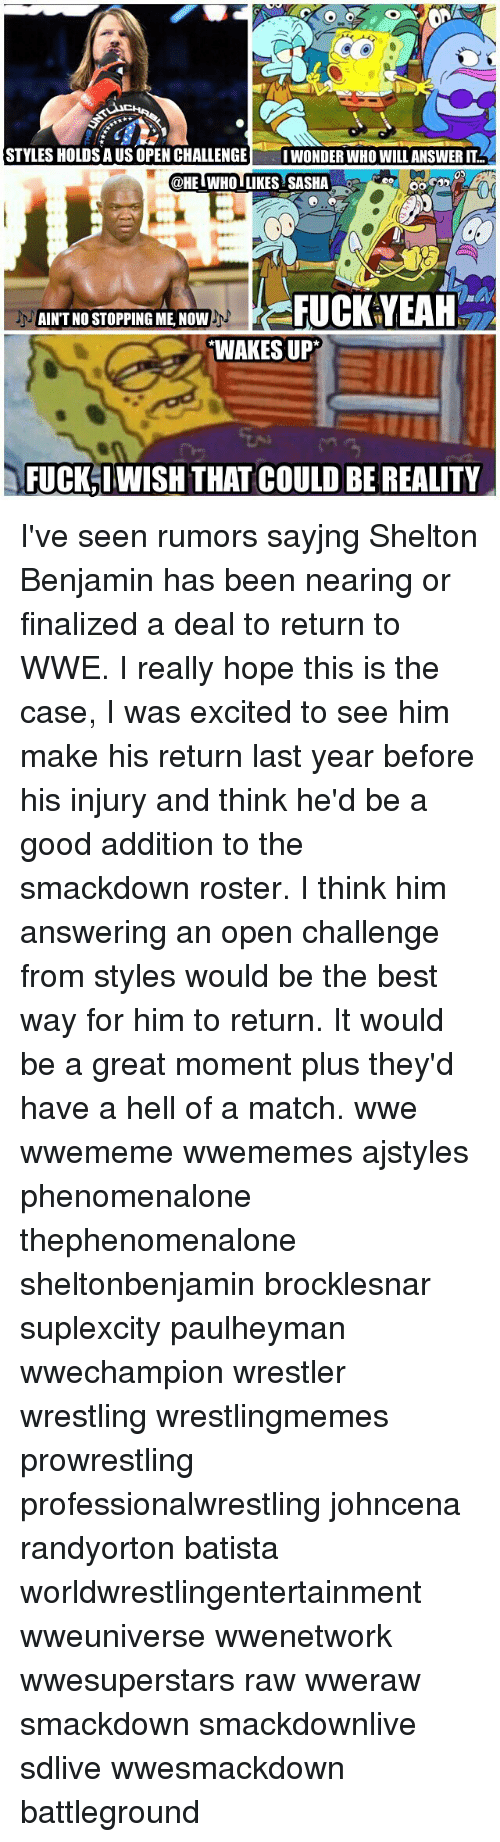 Batista: STYLES HOLDS A US OPEN CHALLENGEIWONDER WHO WILLANSWER IT  @HEIWHO LIKES SASHA  AIN'T NO STOPPING ME, NOW  WAKES UP  FUCK IWISH THAT COULD BE REALITY I've seen rumors sayjng Shelton Benjamin has been nearing or finalized a deal to return to WWE. I really hope this is the case, I was excited to see him make his return last year before his injury and think he'd be a good addition to the smackdown roster. I think him answering an open challenge from styles would be the best way for him to return. It would be a great moment plus they'd have a hell of a match. wwe wwememe wwememes ajstyles phenomenalone thephenomenalone sheltonbenjamin brocklesnar suplexcity paulheyman wwechampion wrestler wrestling wrestlingmemes prowrestling professionalwrestling johncena randyorton batista worldwrestlingentertainment wweuniverse wwenetwork wwesuperstars raw wweraw smackdown smackdownlive sdlive wwesmackdown battleground